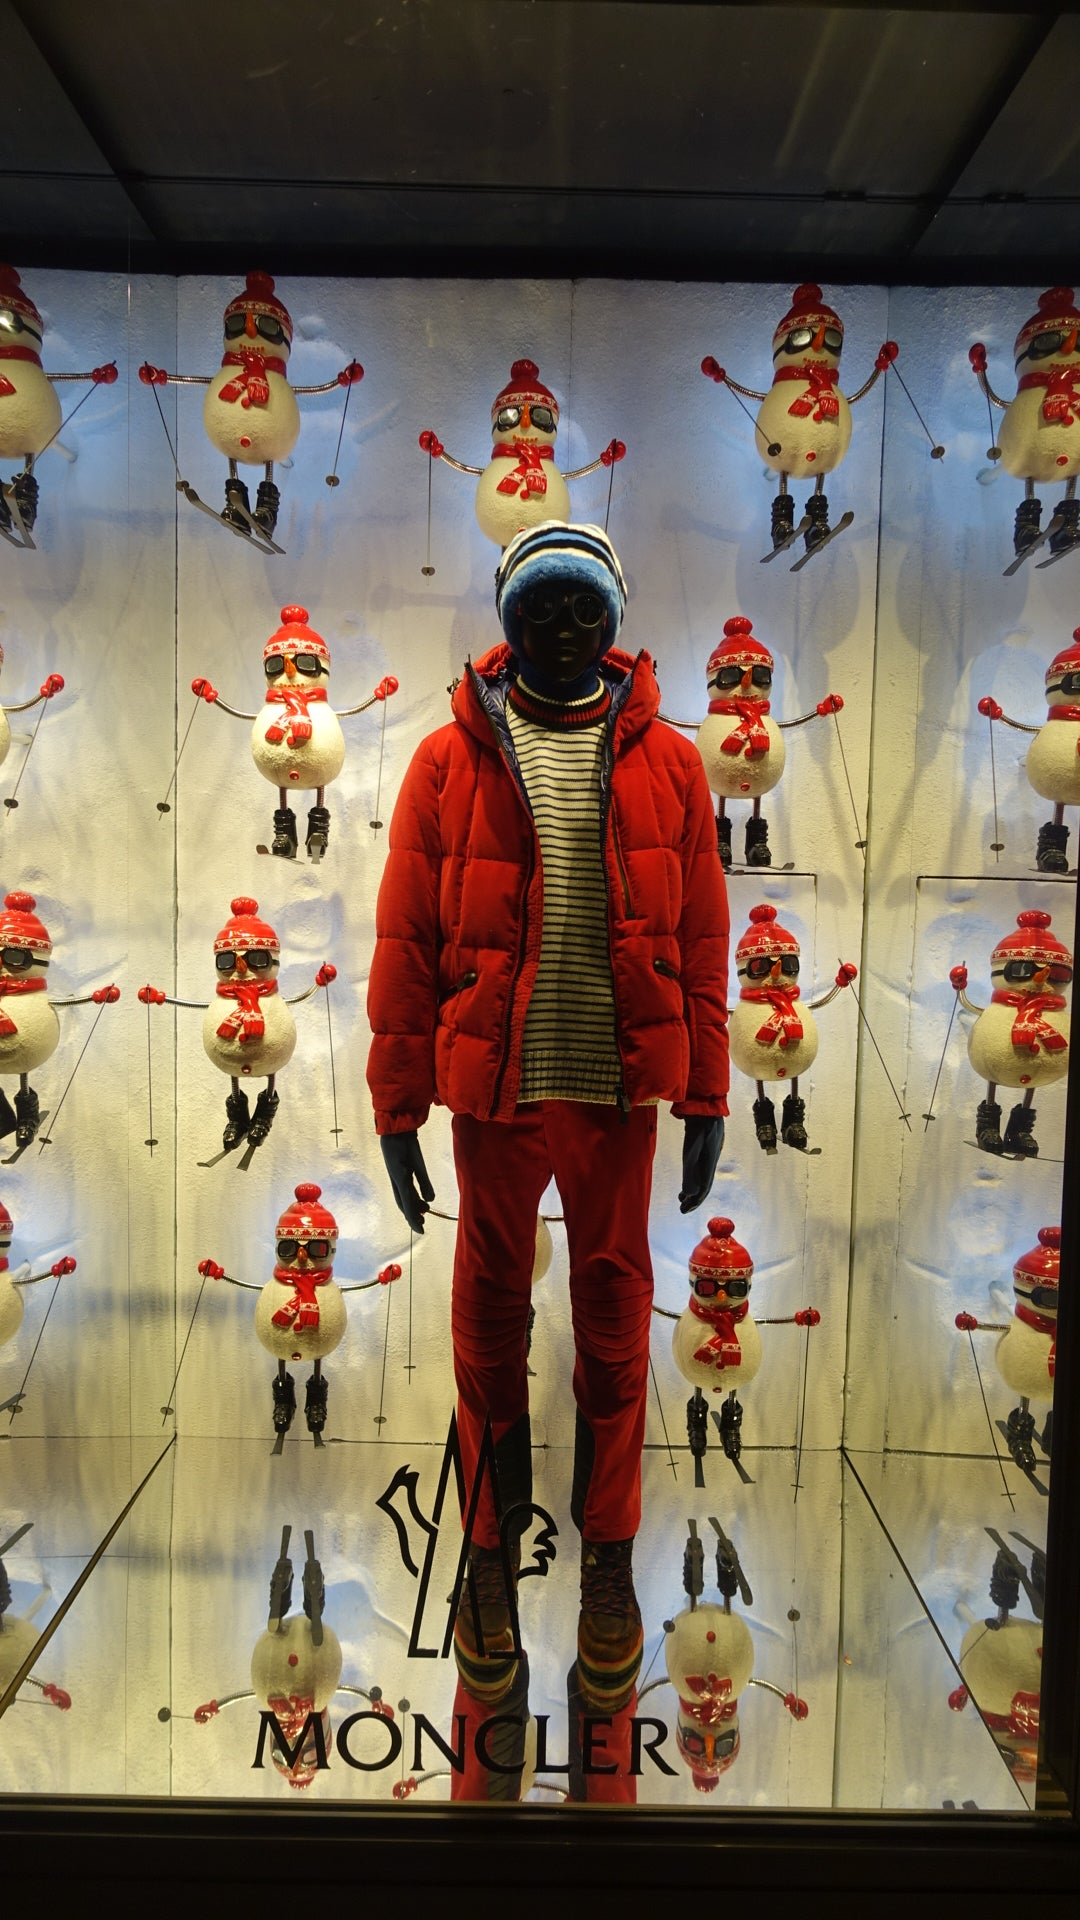 MONCLER SNOWMAN WINDOW DISPLAY